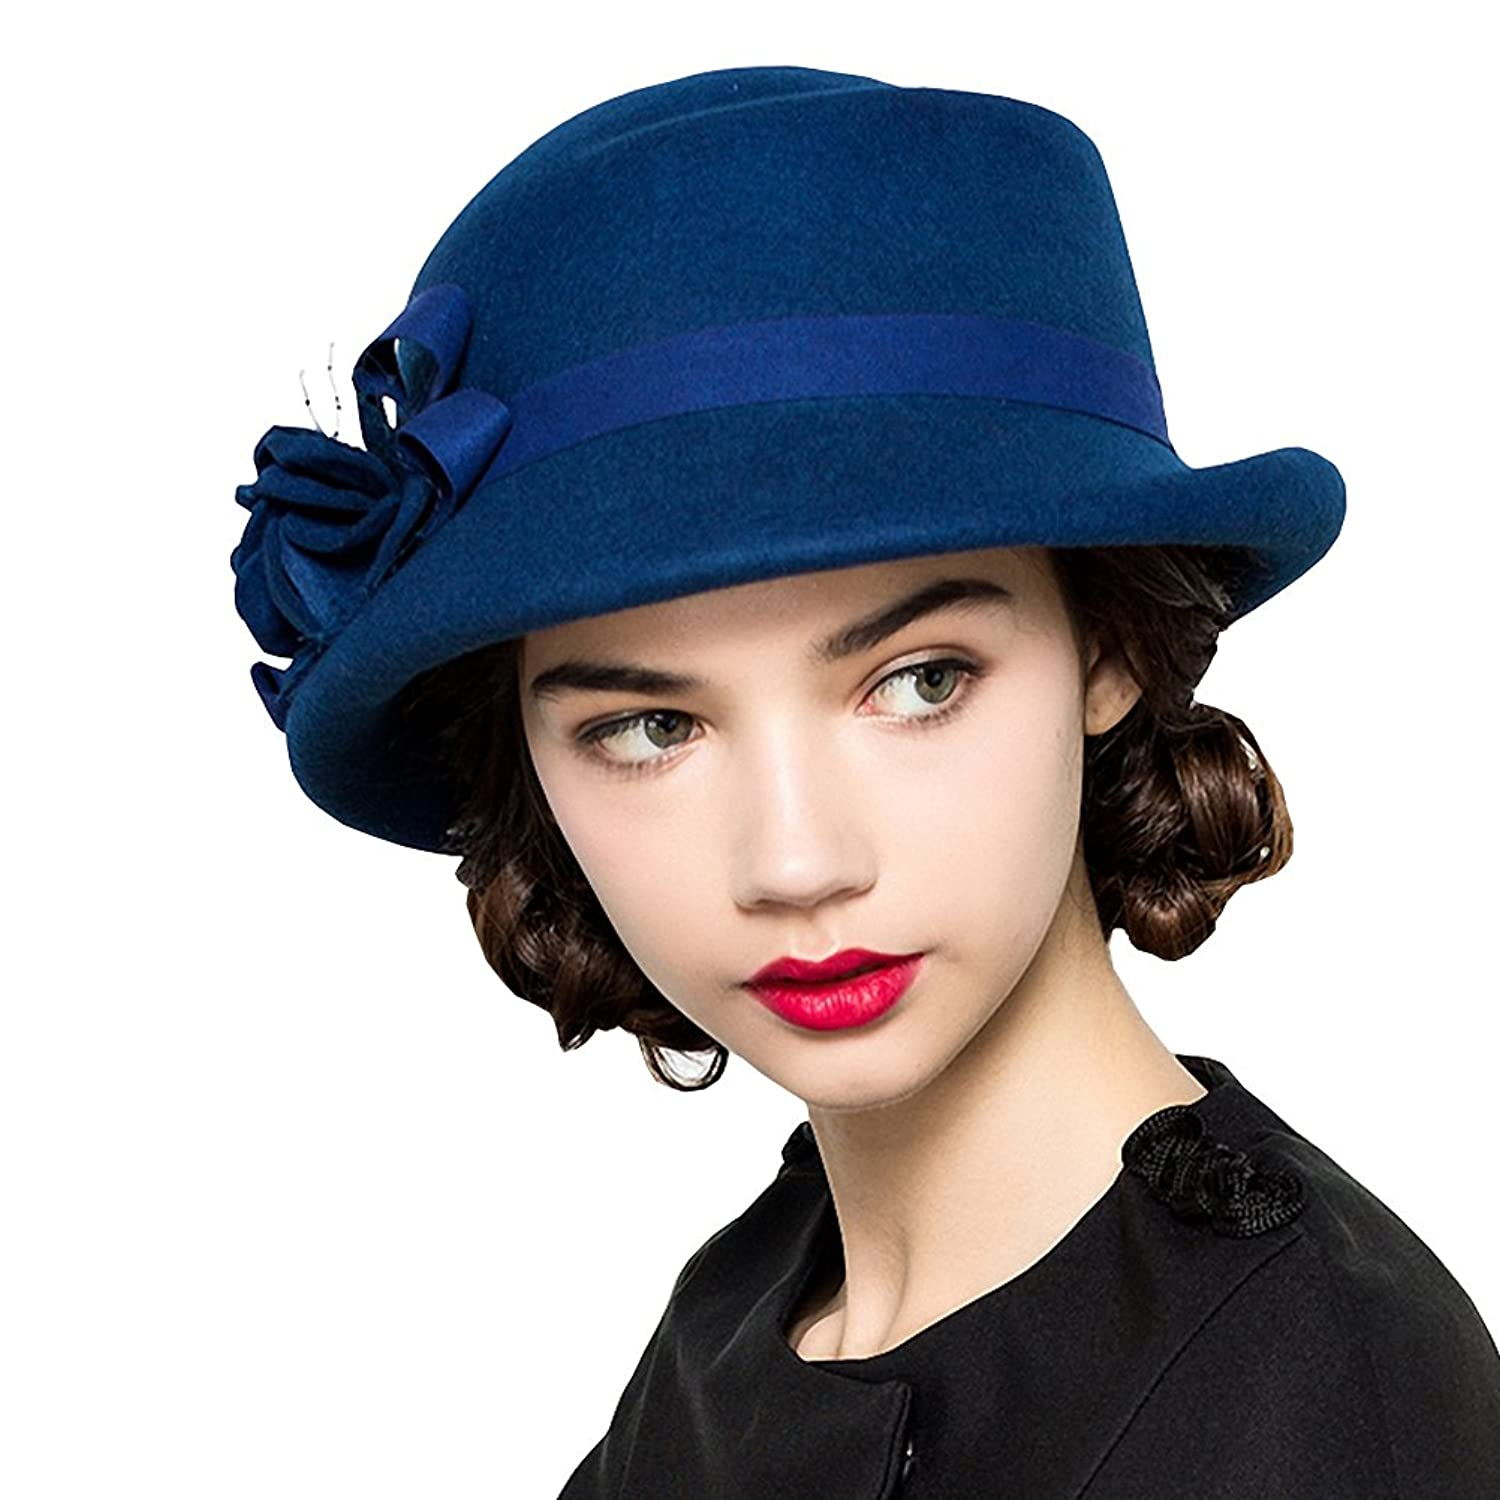 Edwardian Hats, Titanic Hats, Tea Party Hats Maitose® Womens Wool Felt Flowers Church Bowler Hats $33.00 AT vintagedancer.com